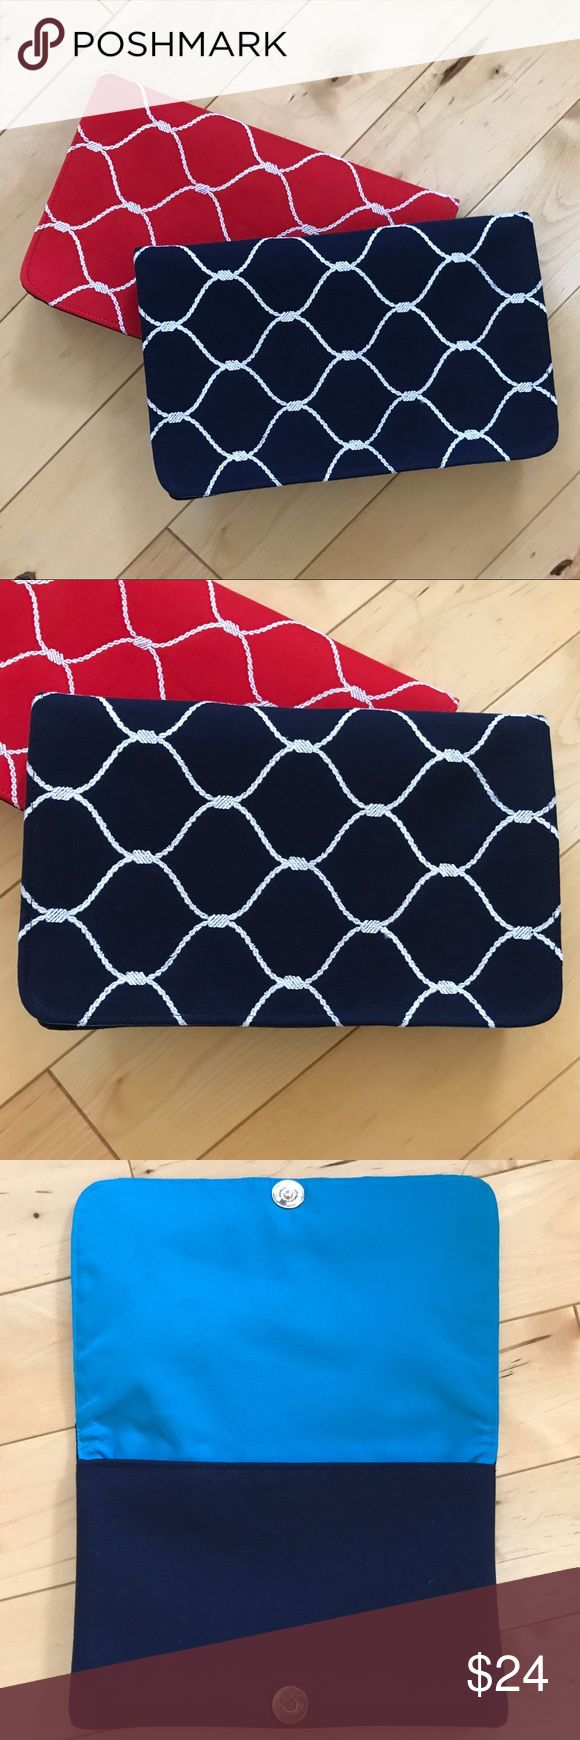 "Shiraleah Navy Nautical Clutch Bag Brand new! Measures 9"" X 6"". Sold at Anthropologie. Navy bag with cute nautical rope pattern. Interior zip pocket. Anthropologie Bags Clutches & Wristlets"